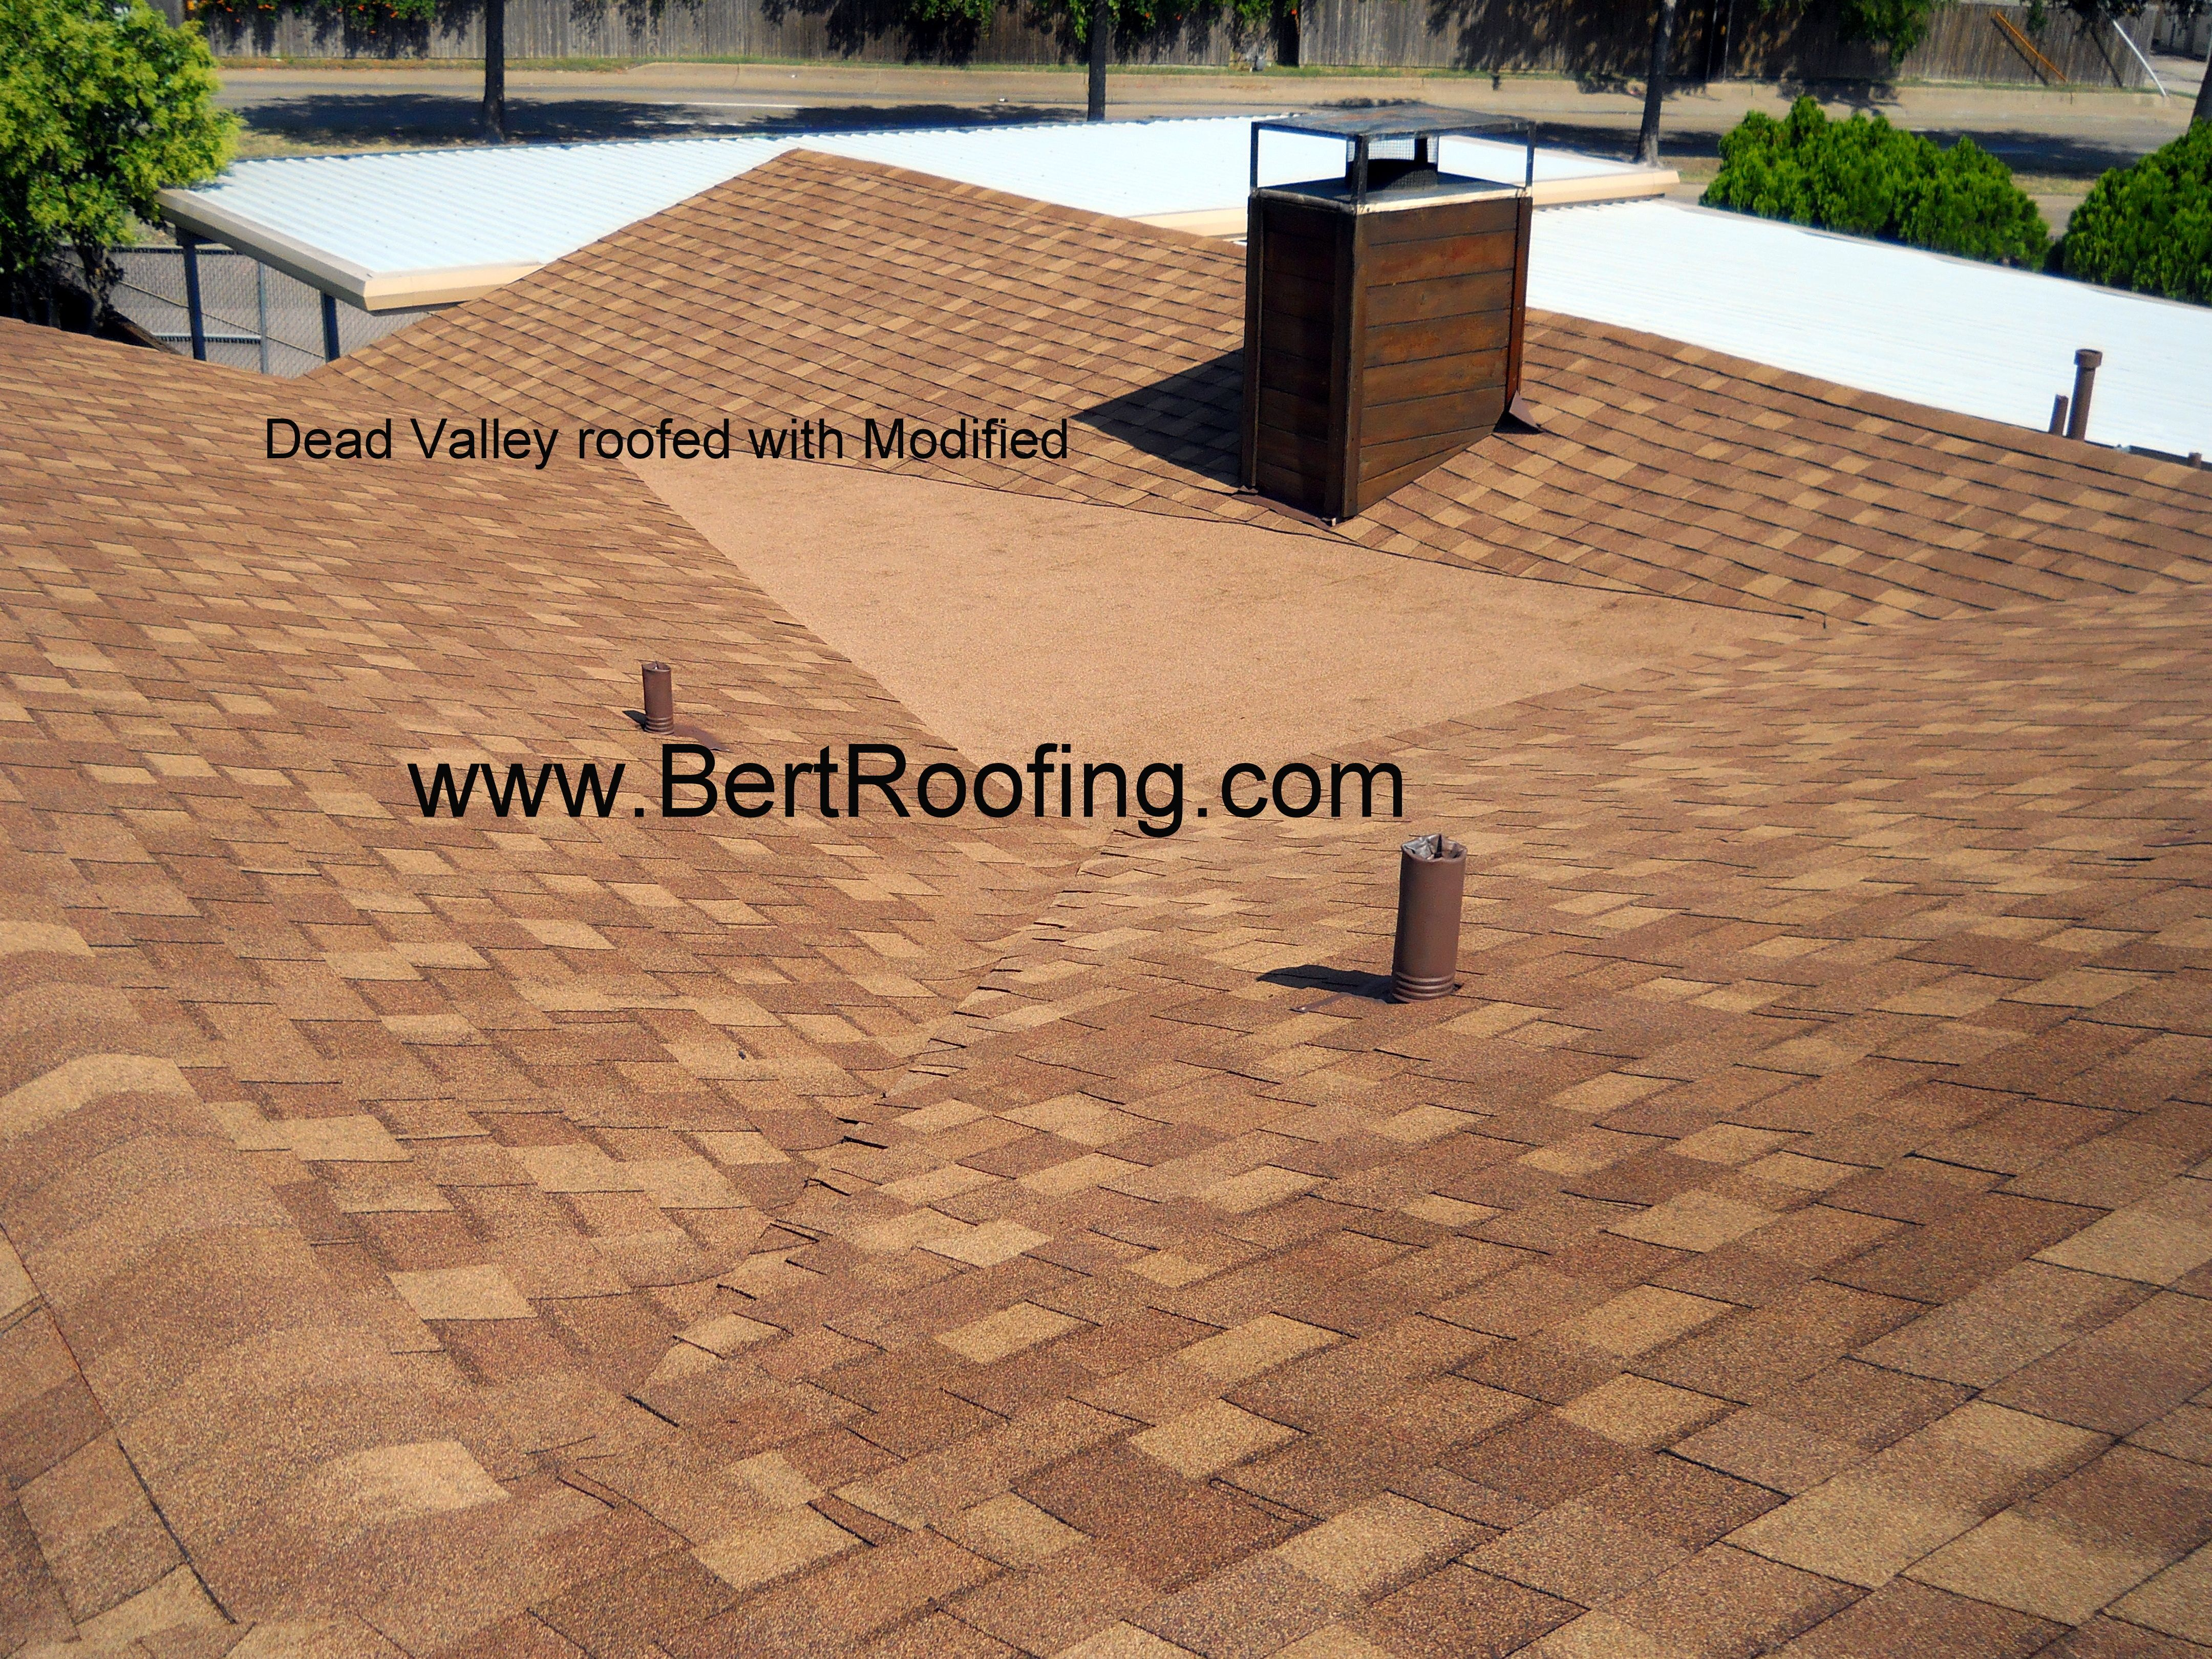 Dead Valley Is A Roof Or Section Of Roof Without Any Pitch Dead Valley Roofed With Modified Bitumen By Bert Roofing In Dallas Sub Roofing Outdoor Decor Roof